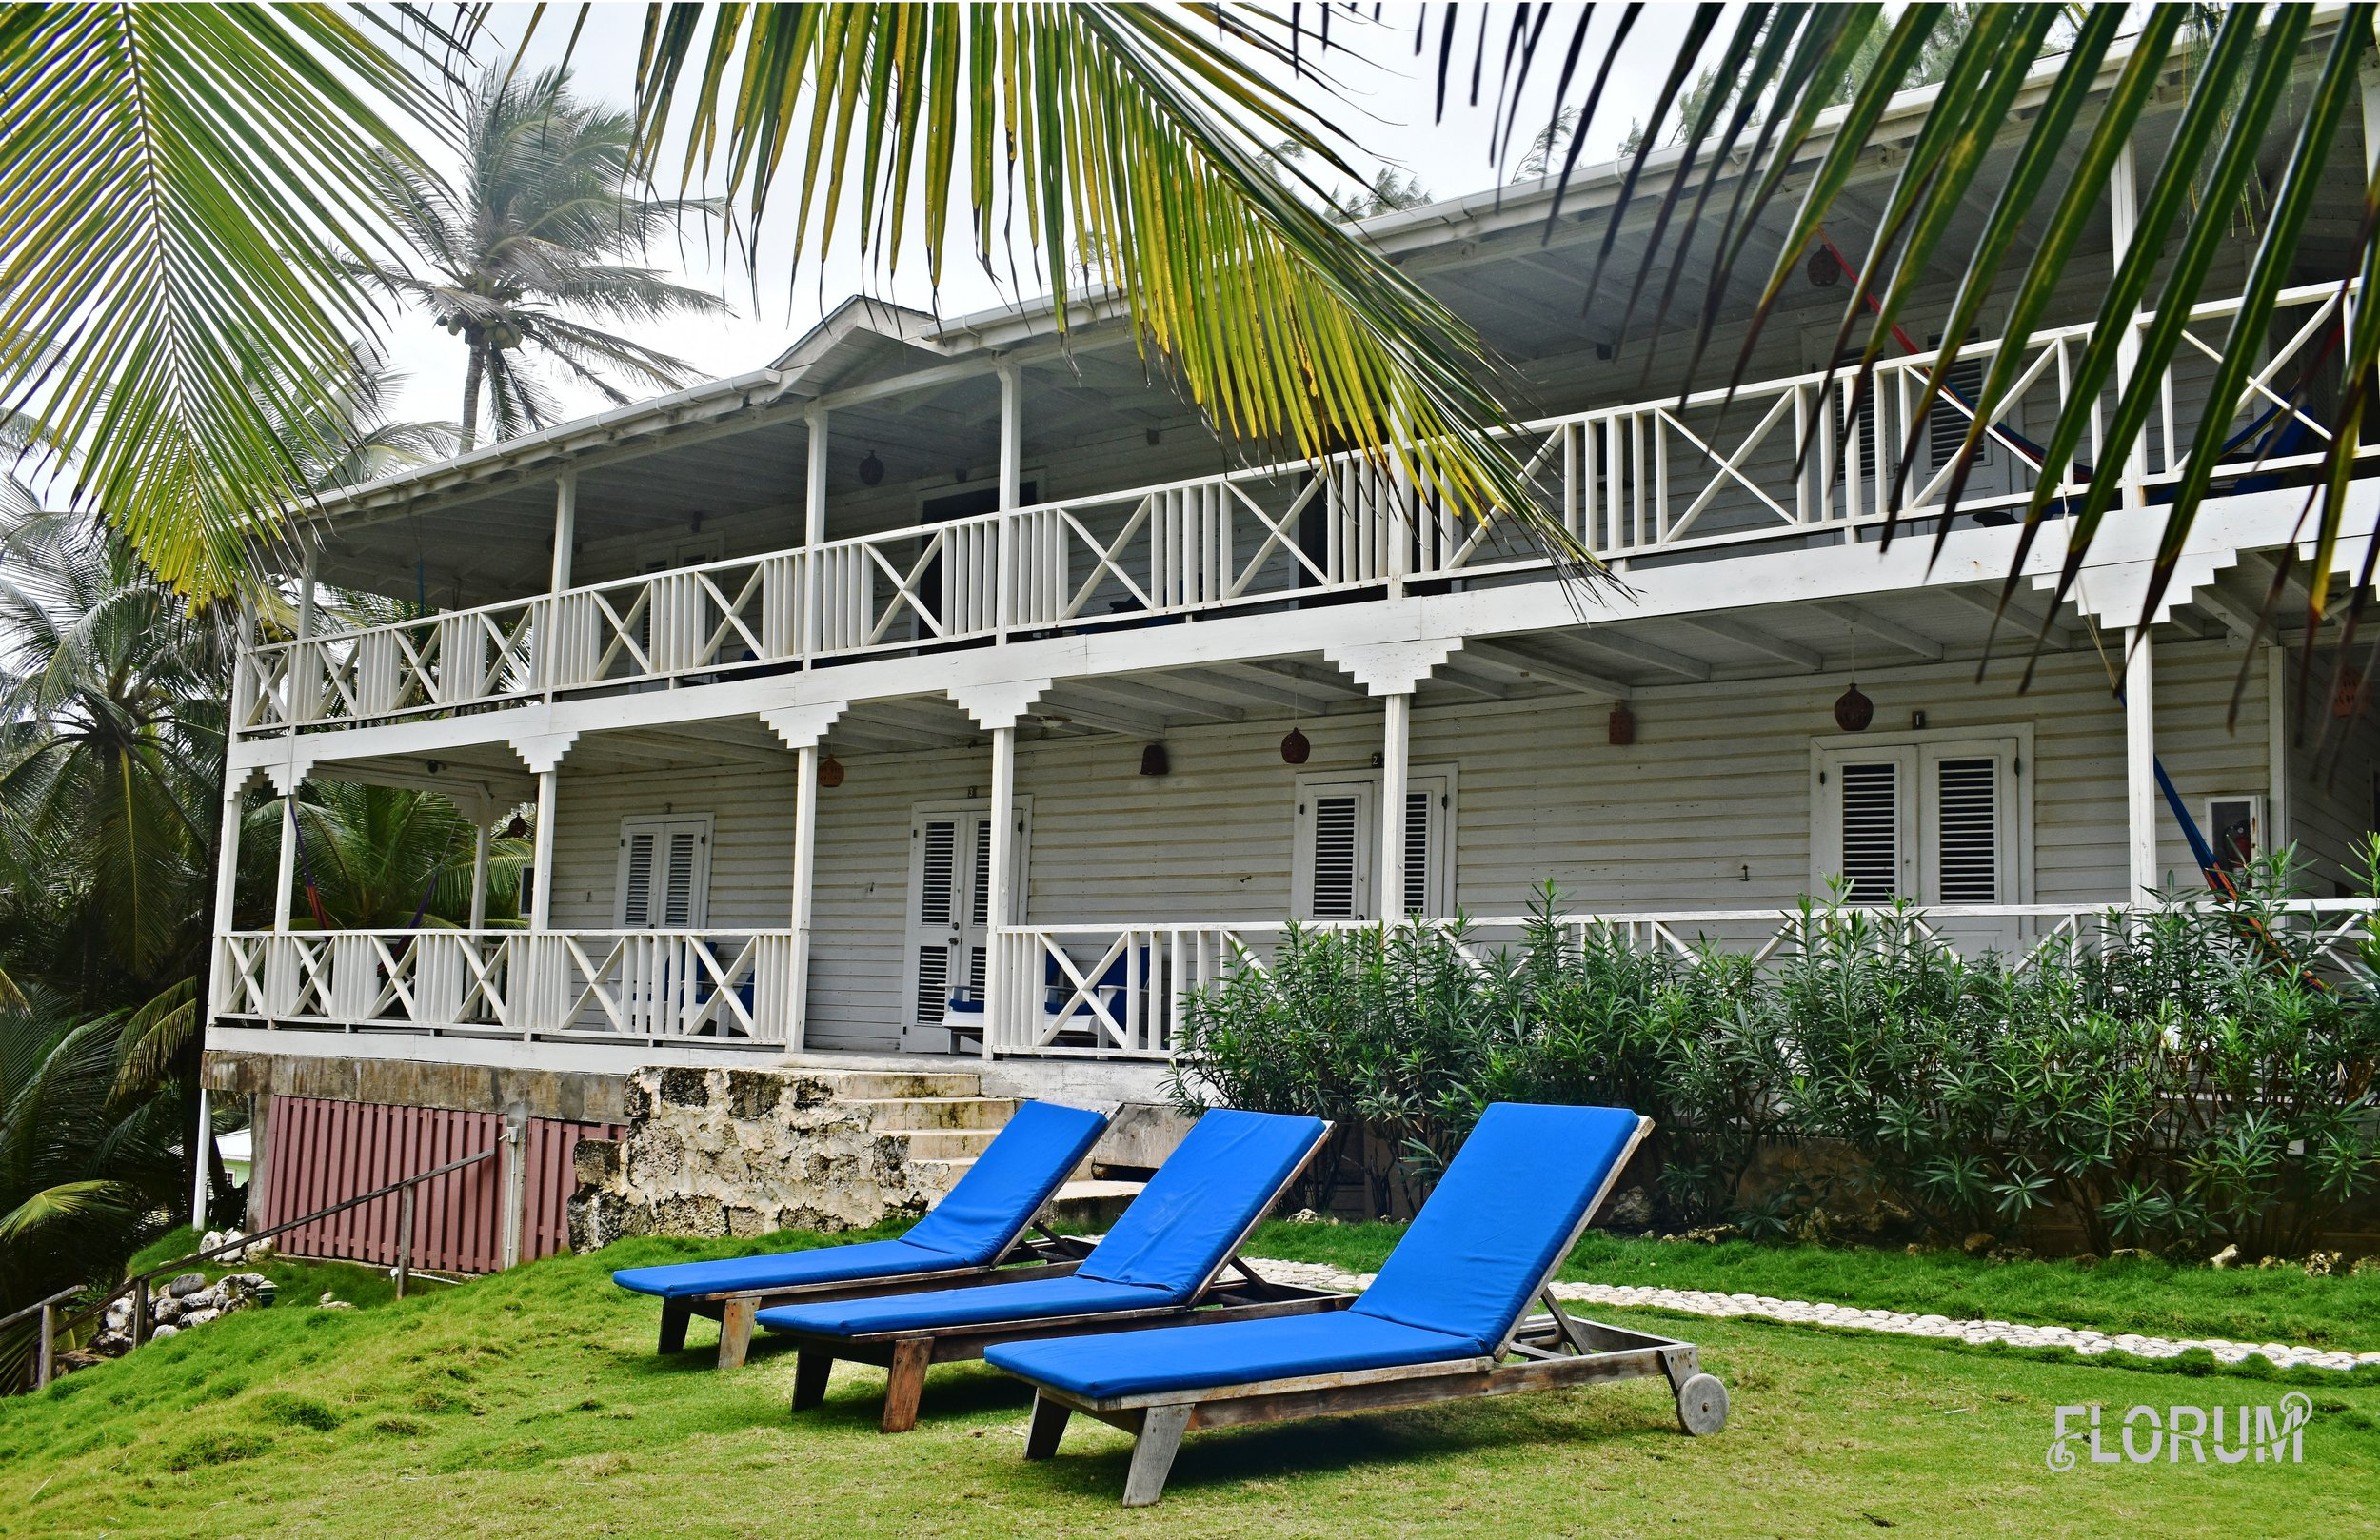 Located in the  Eastern Caribbean on the beautiful island of Barbados is a small environmentally friendly boutique hotel called ECO Lifestyle + Lodge , which was formerly known as Sea-U Guest House. This eco oasis is located on the east coastline of Barbados, tucked away in the seacliff, you'll see and hear the Atlantic Ocean that kisses the shorelines below this green hotel.   ECO Lifestyle + Lodge  is not only beautifully built in the traditional Bajan style, however the hotel is a responsible travel choice as this boutique hotel has made a firm commitment to meeting the highest international standards towards the environment, conservation and corporate responsibility.